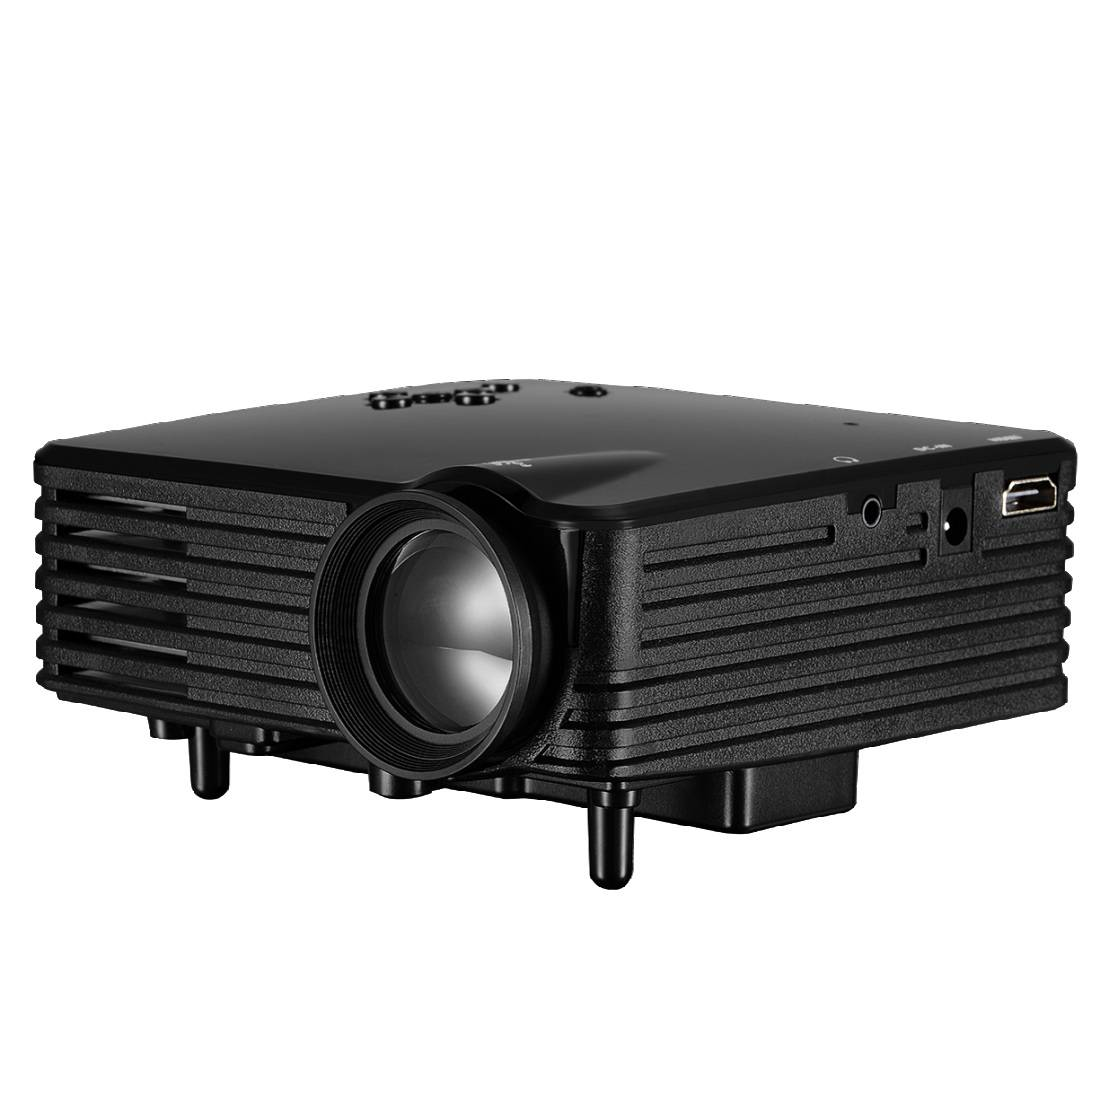 Mini Projector for the Home use Support 720P Smart Phone cheap Tablet PC projector, not home theater